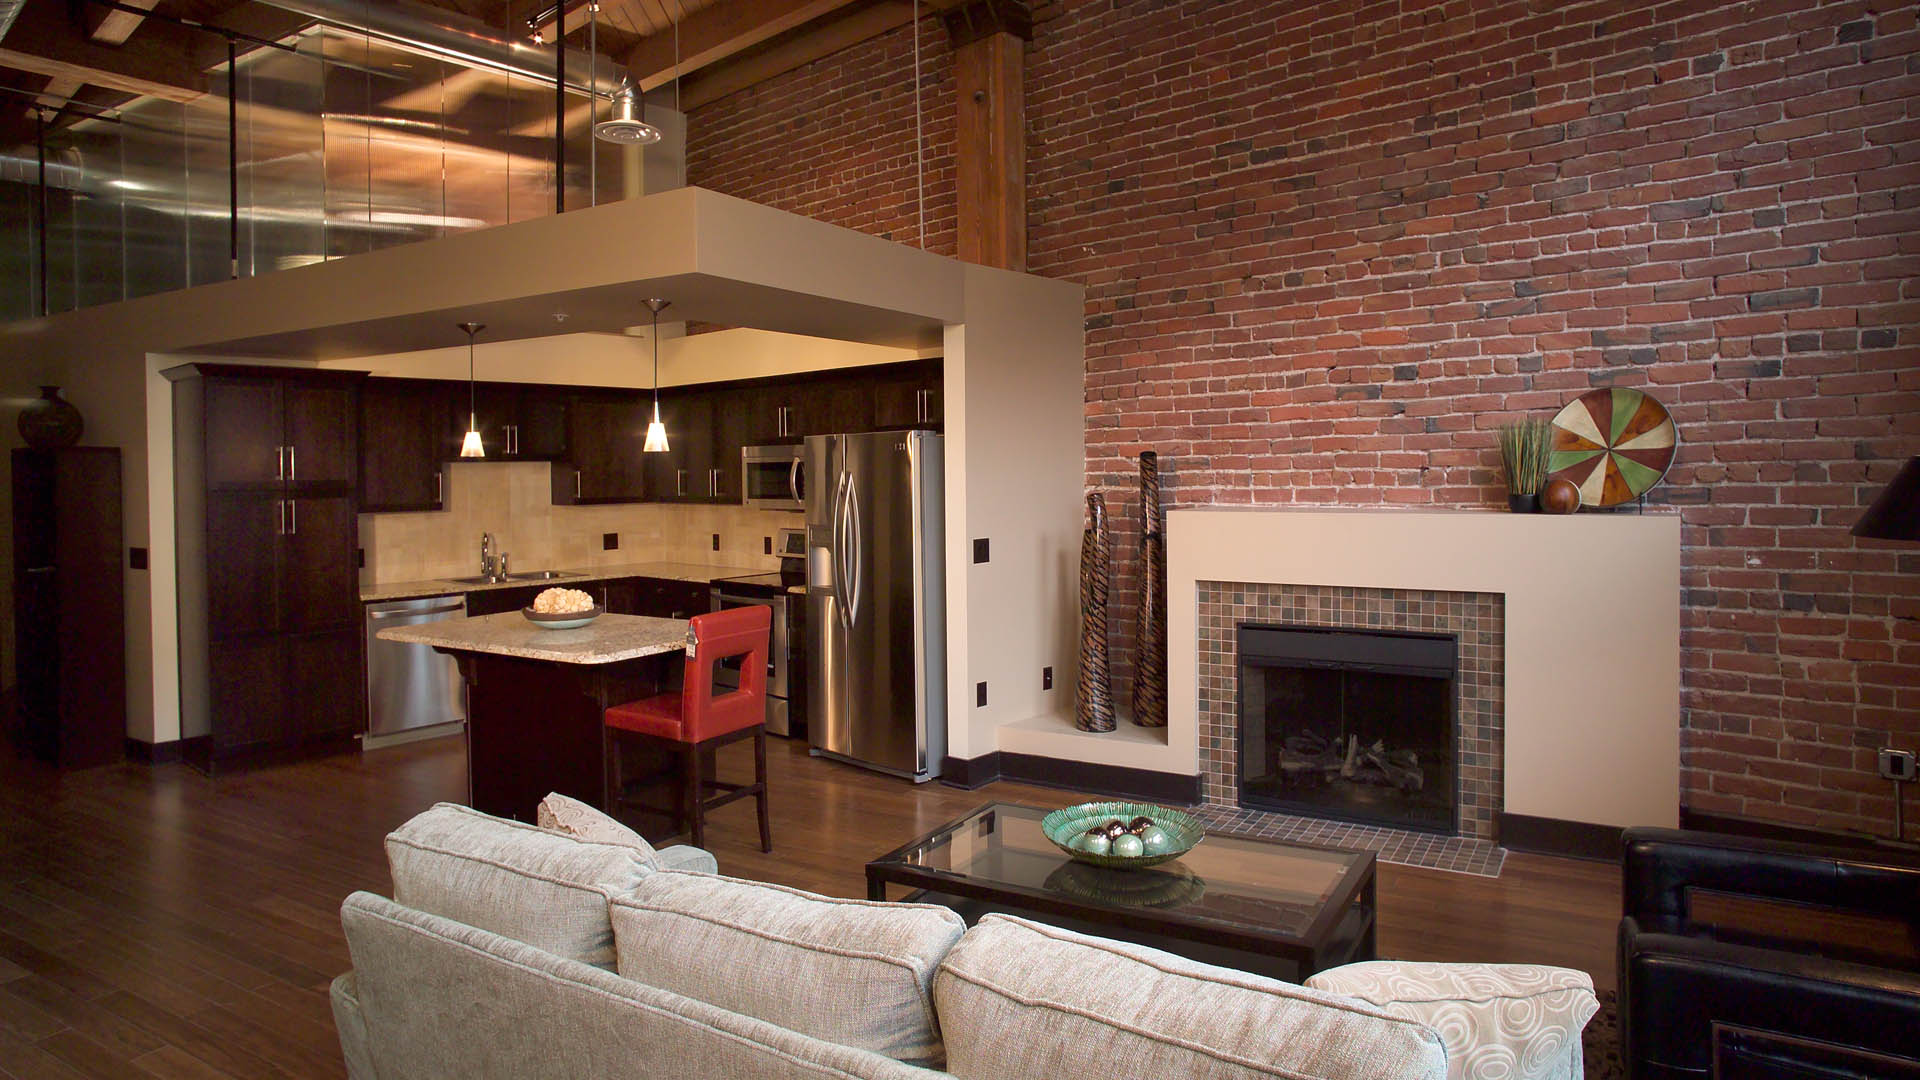 05 1920x1080 Old MarketPlace Apartments Fireplace 1100x450 ...